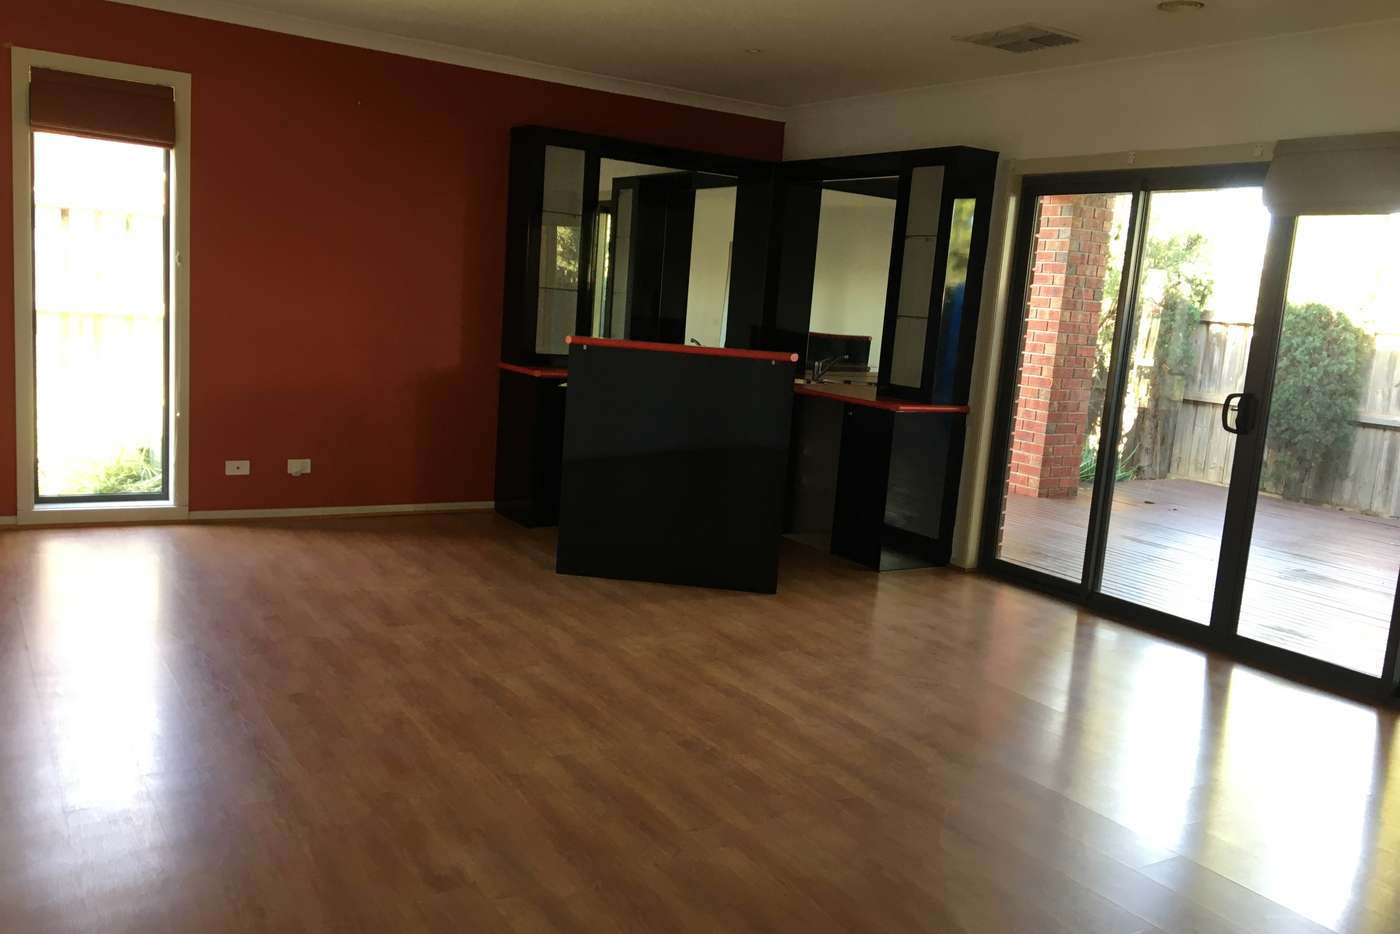 Sixth view of Homely house listing, 7 Zetland Way, Tarneit VIC 3029